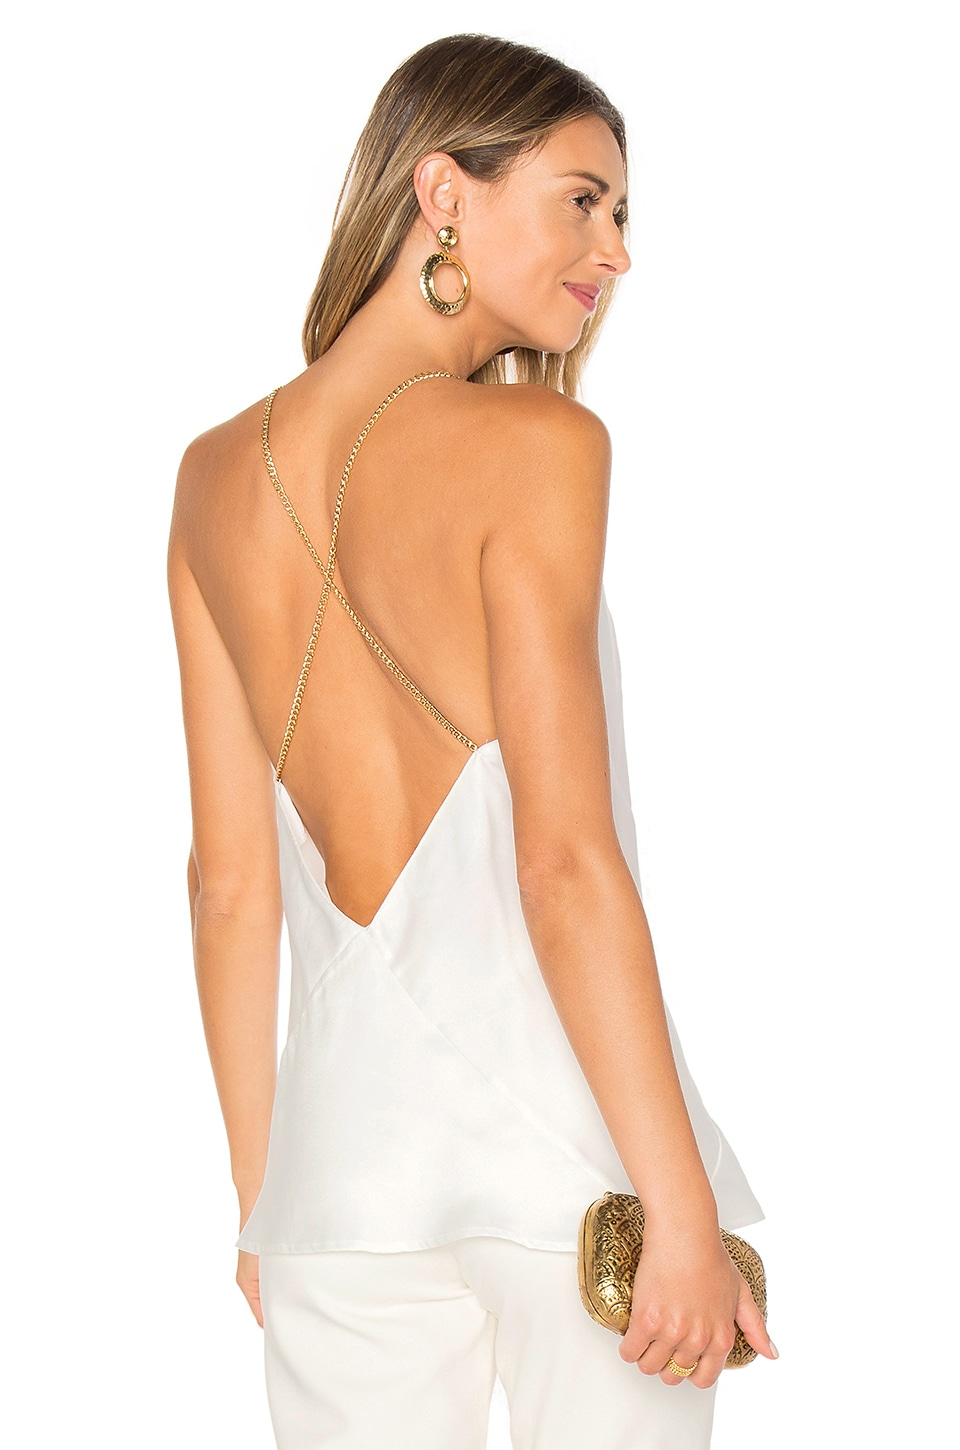 AIRLIE Silana Cami in White